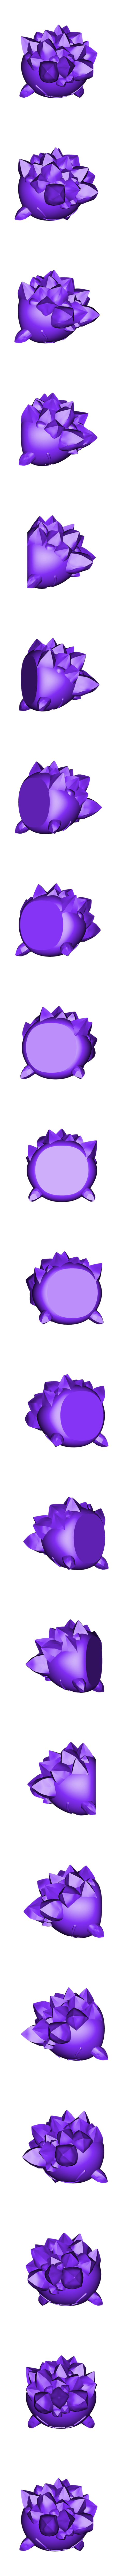 Rock_Slime_Hungry.stl Download free STL file Quantum Slime! And other variations [Crystal, Boom, Rock and Honey] • 3D printer template, ChaosCoreTech